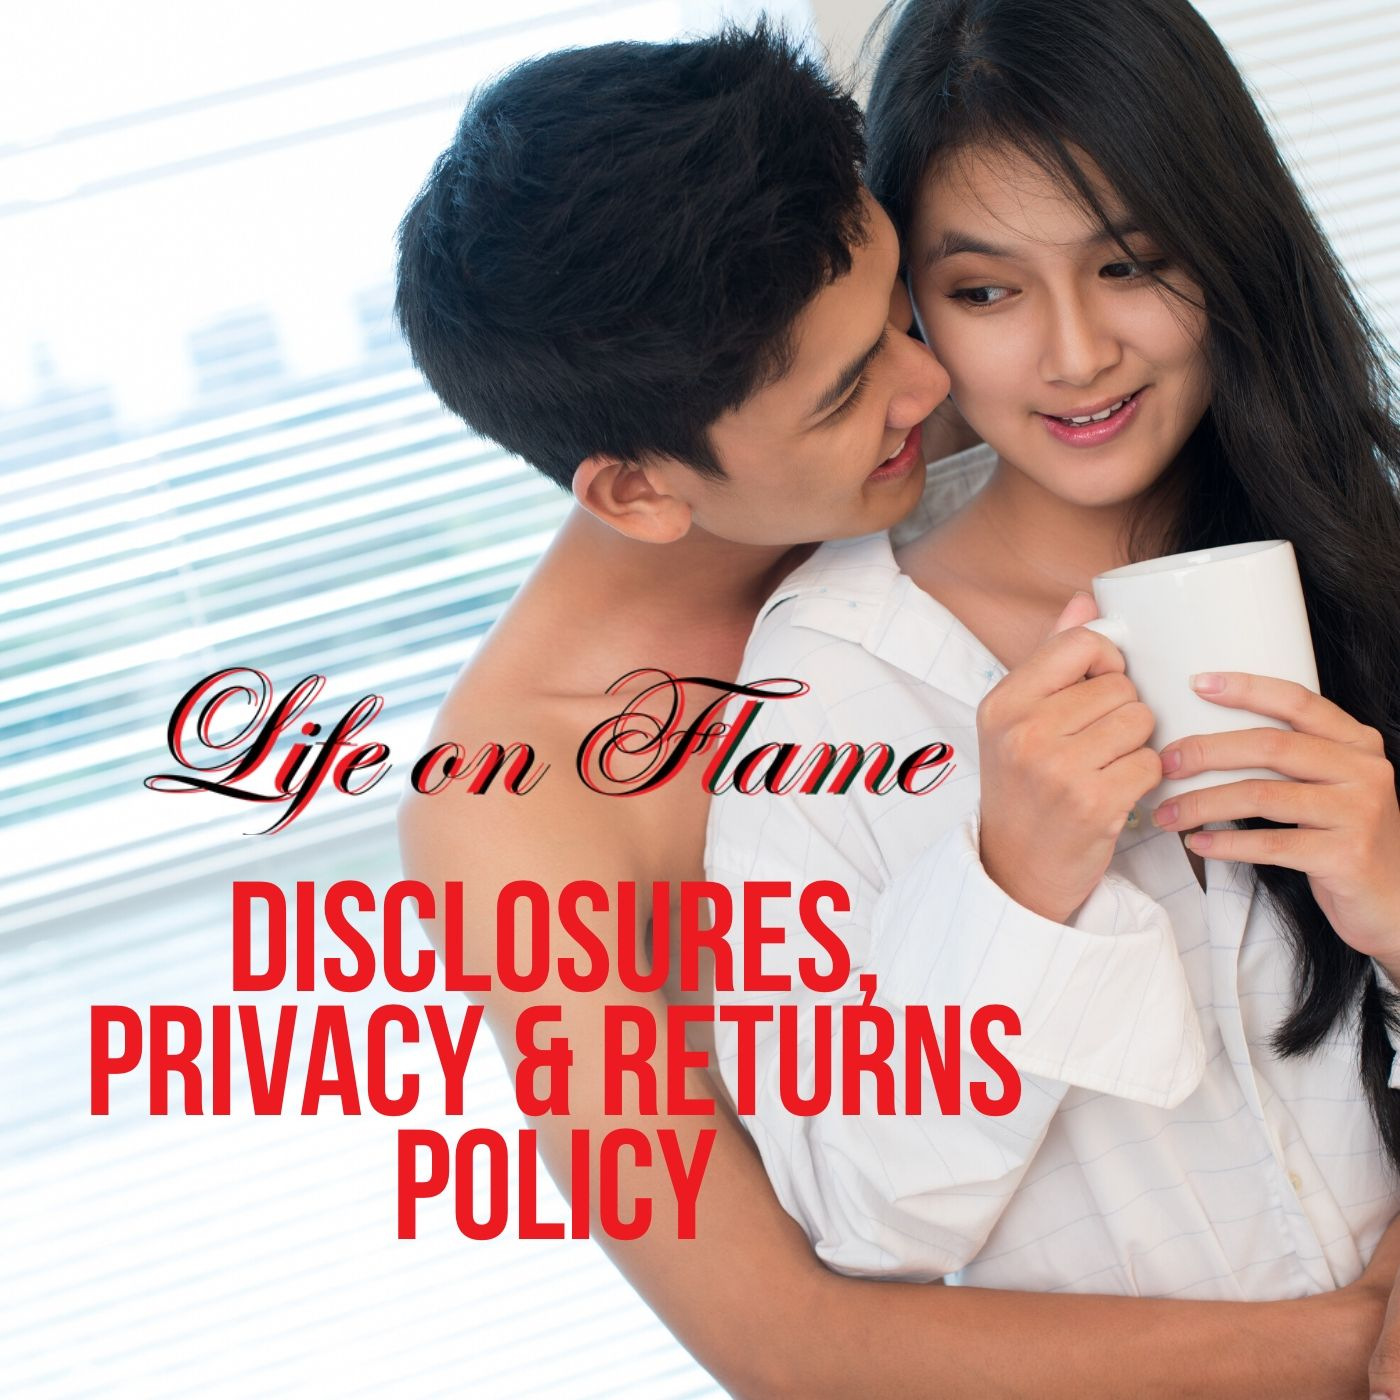 LIF - Disclosures, privacy & returns policy